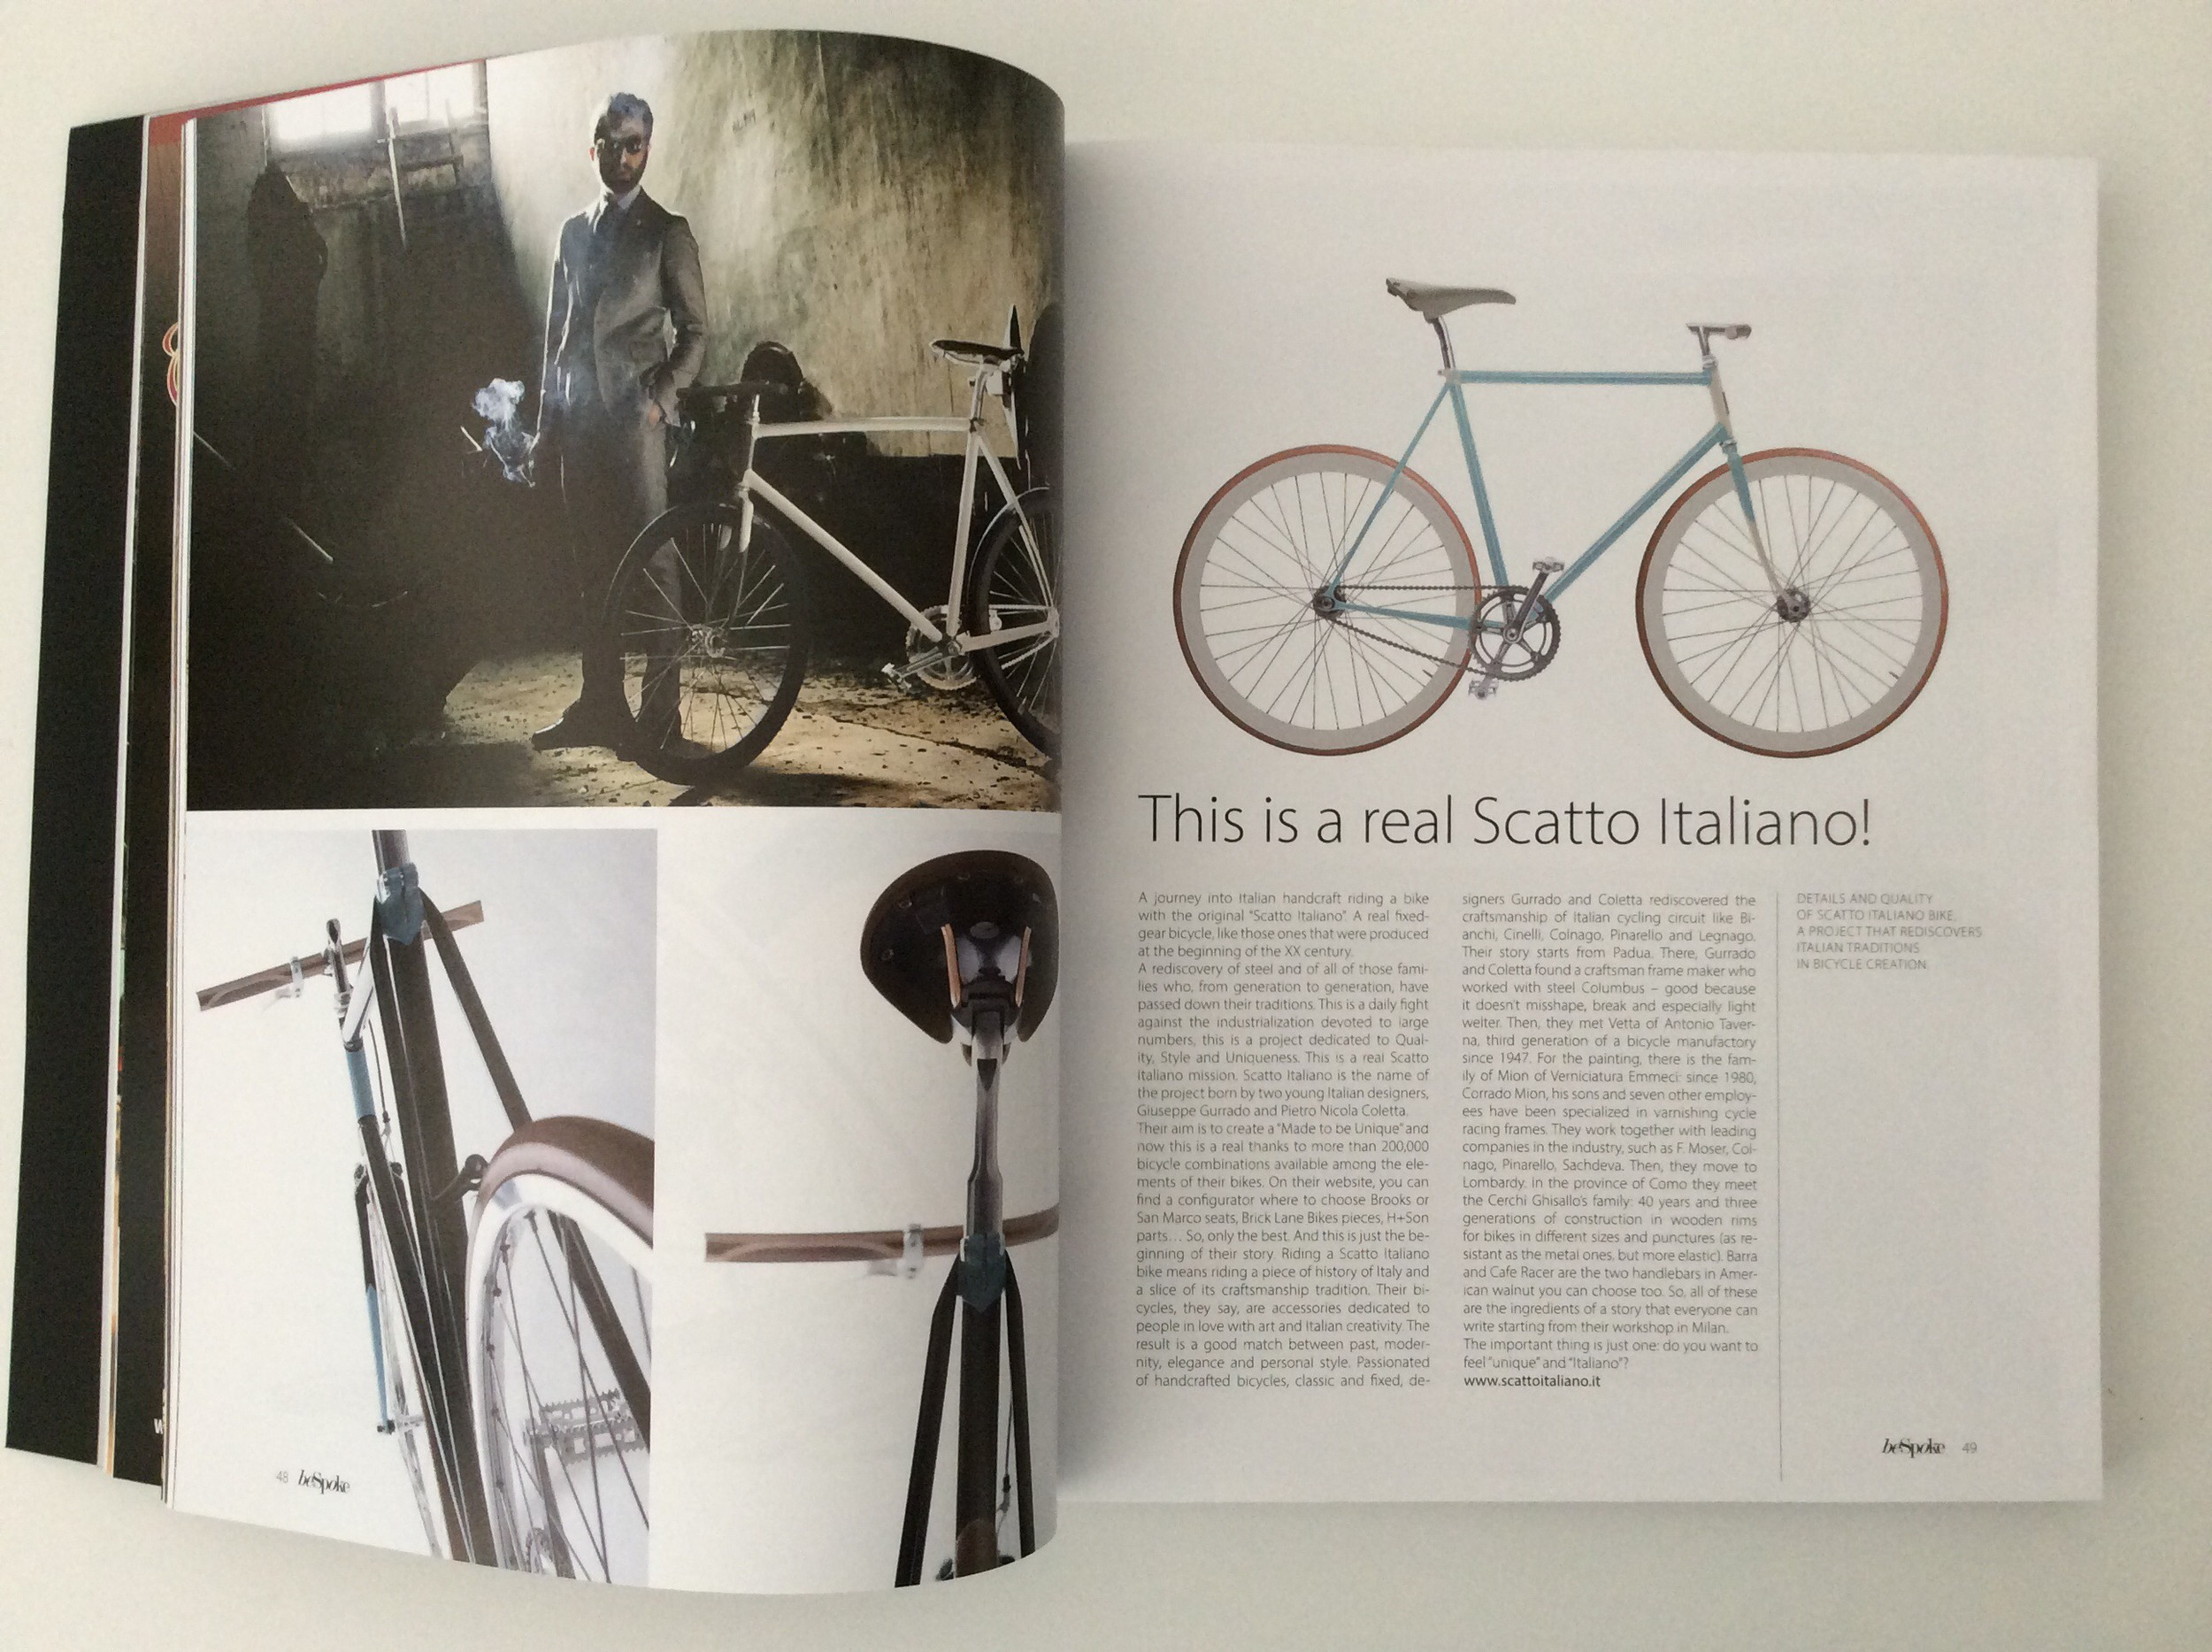 """Riding a Scatto Italiano bike means riding a piece of history of Italy and a slice of its craftsmanship tradition""  Sounds nice! :)"